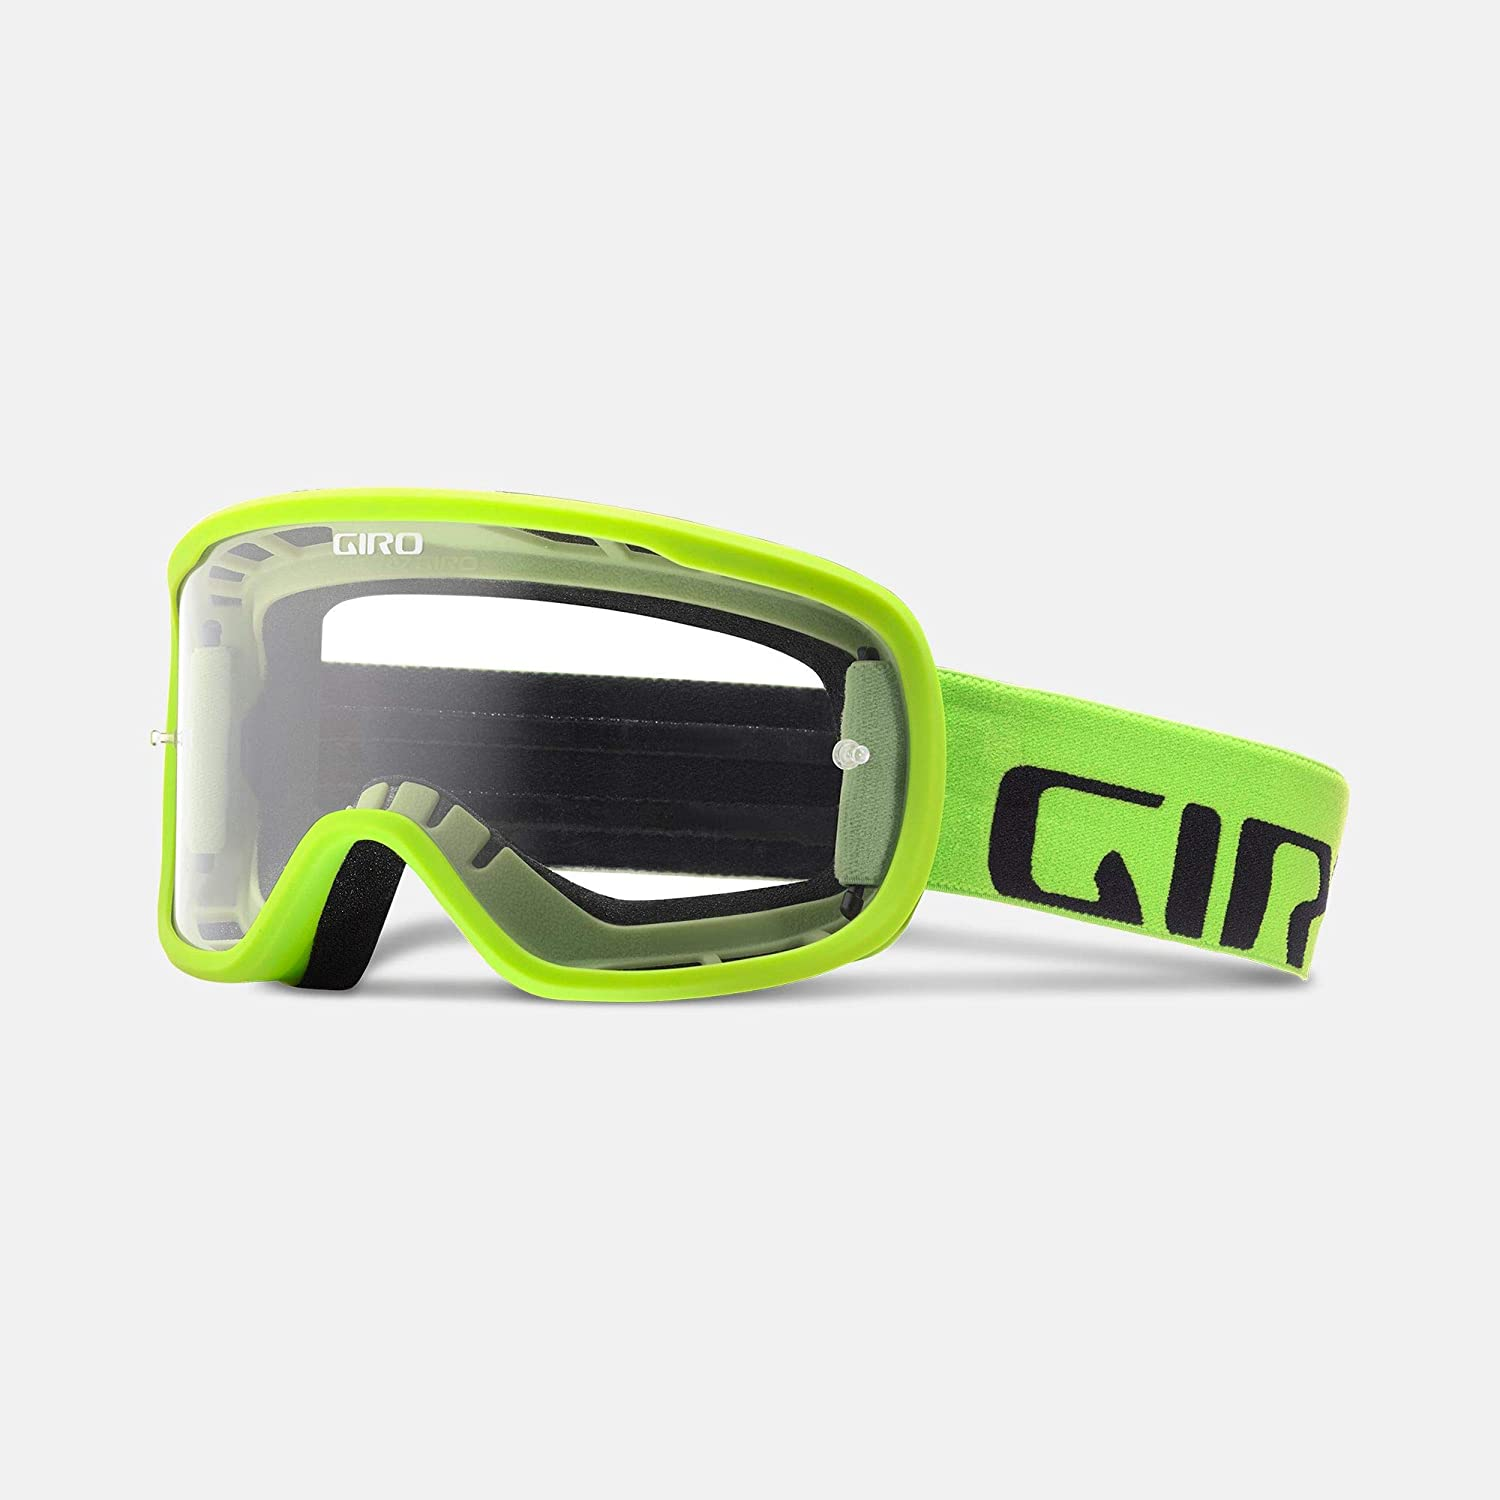 Giro Tempo MTB Unisex Dirt Mountain Bike Goggles